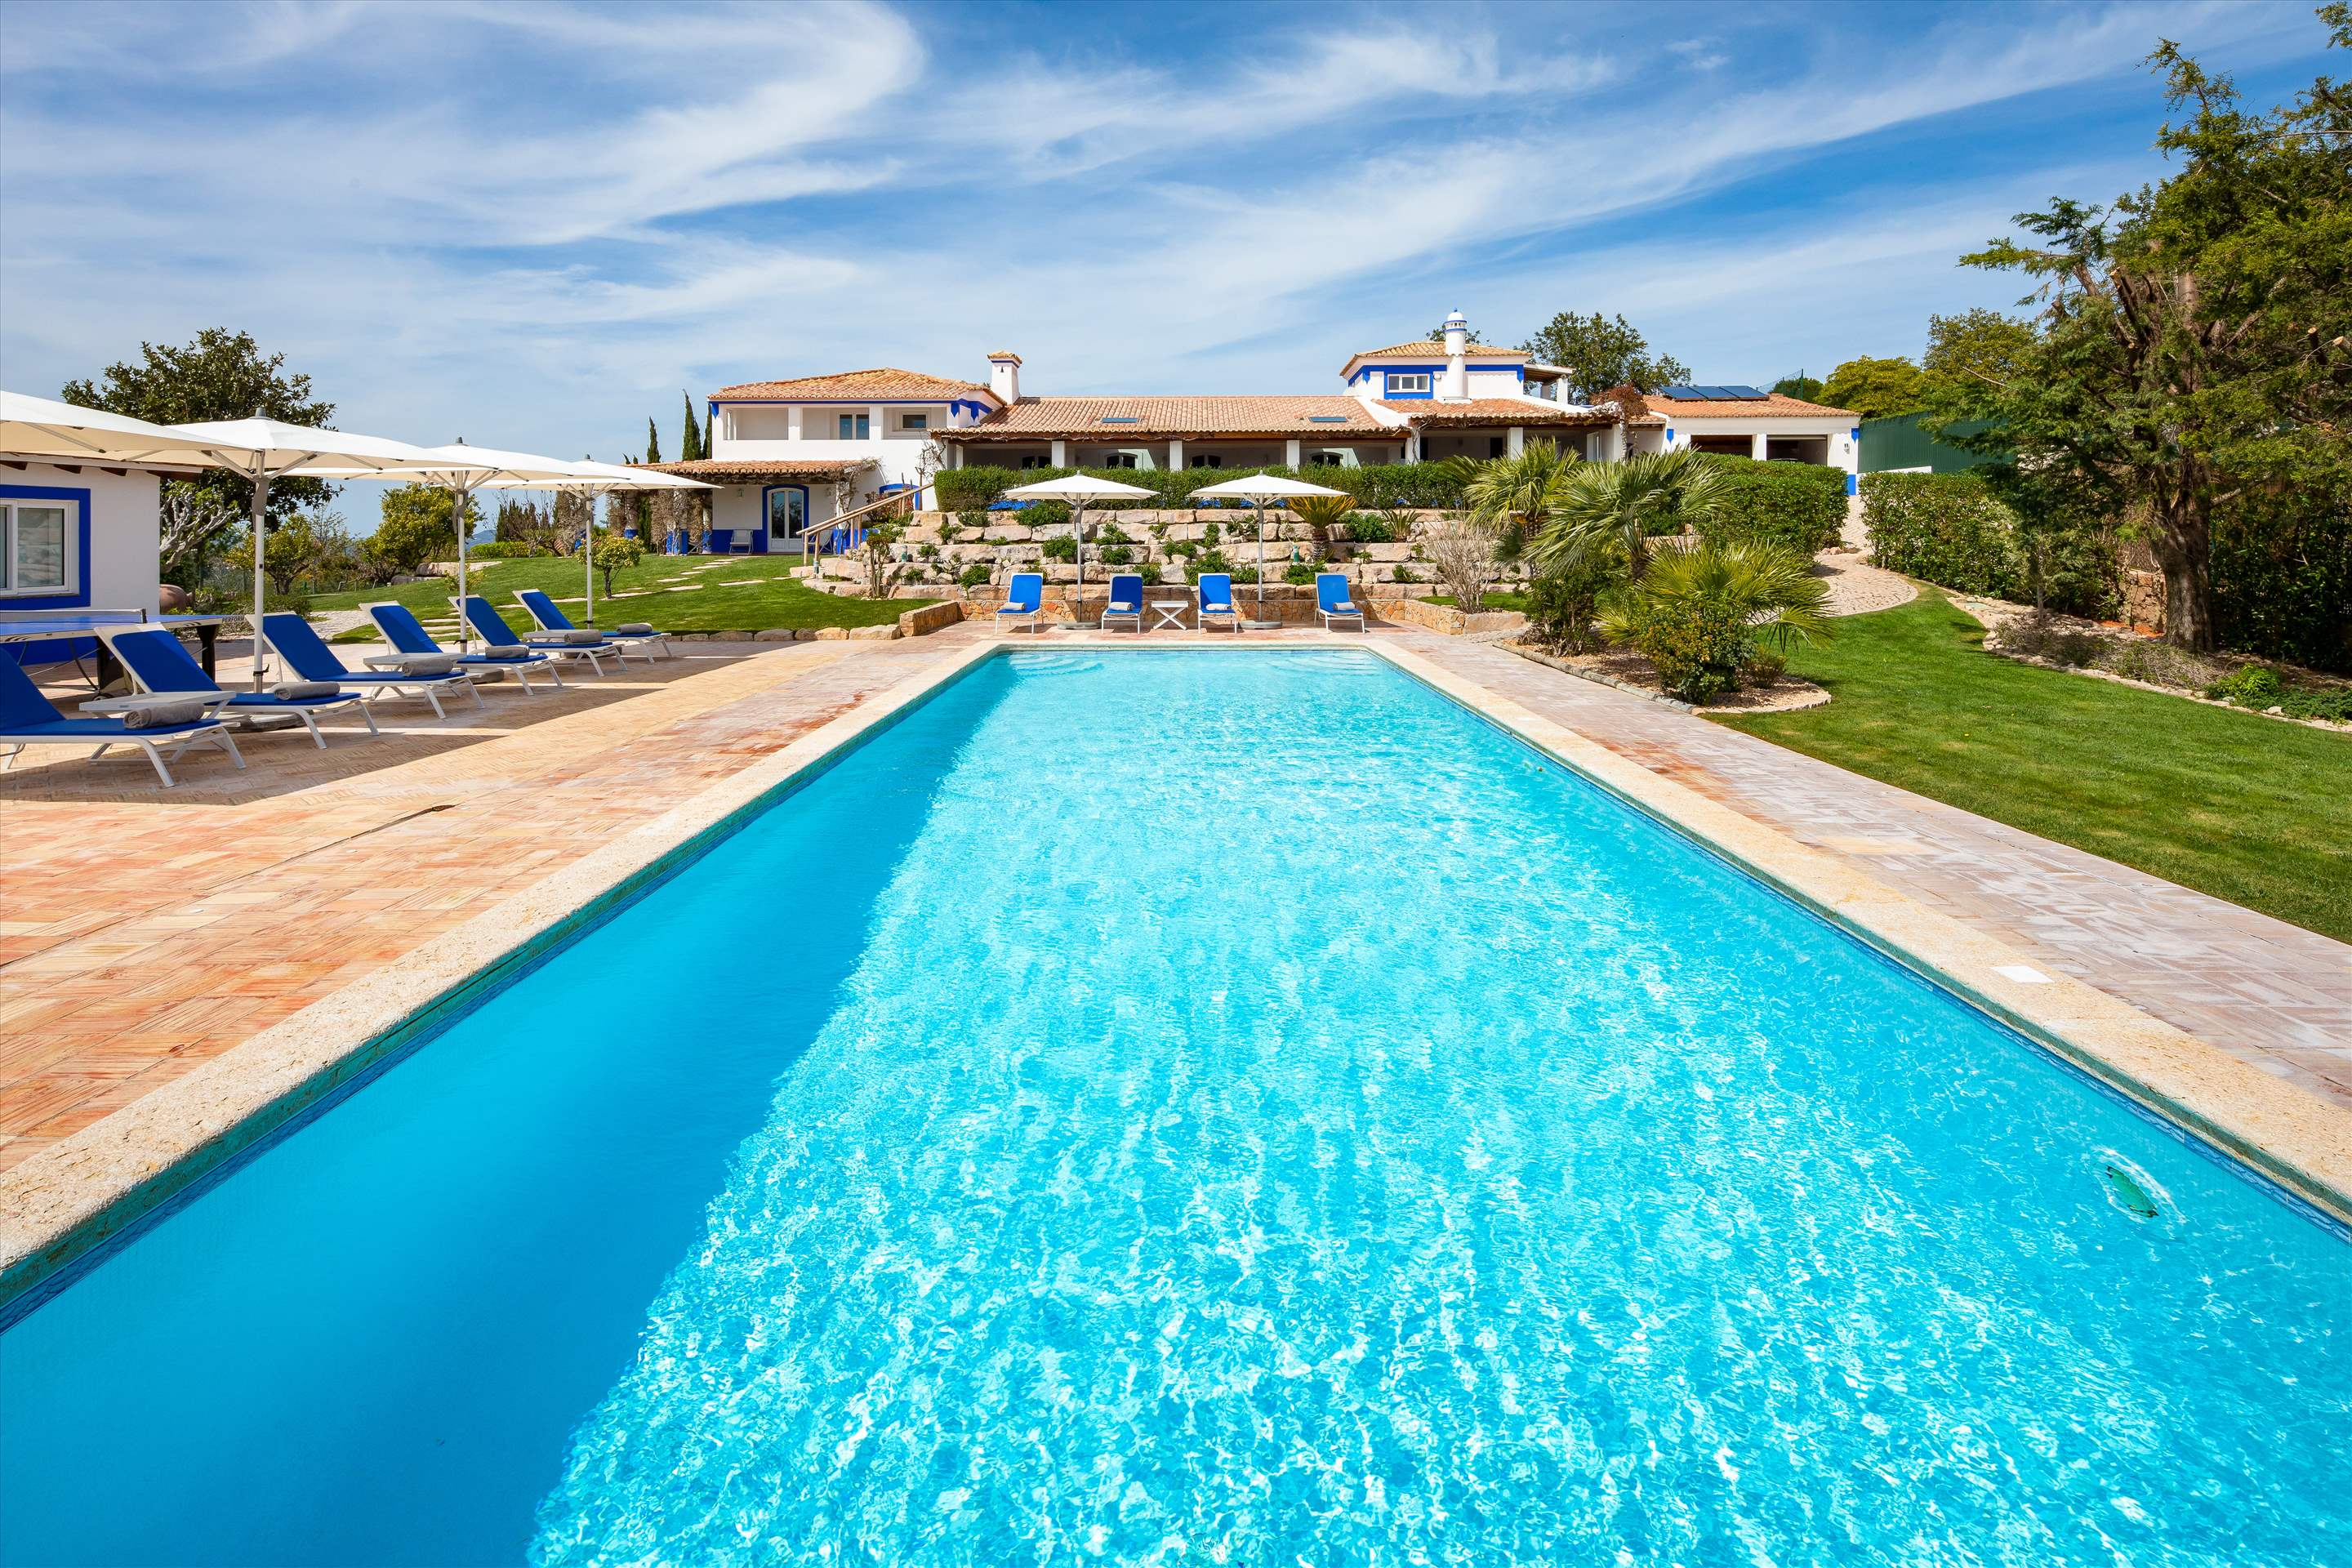 Casa da Montanha, 11-12 persons, 7 bedroom villa in Vilamoura Area, Algarve